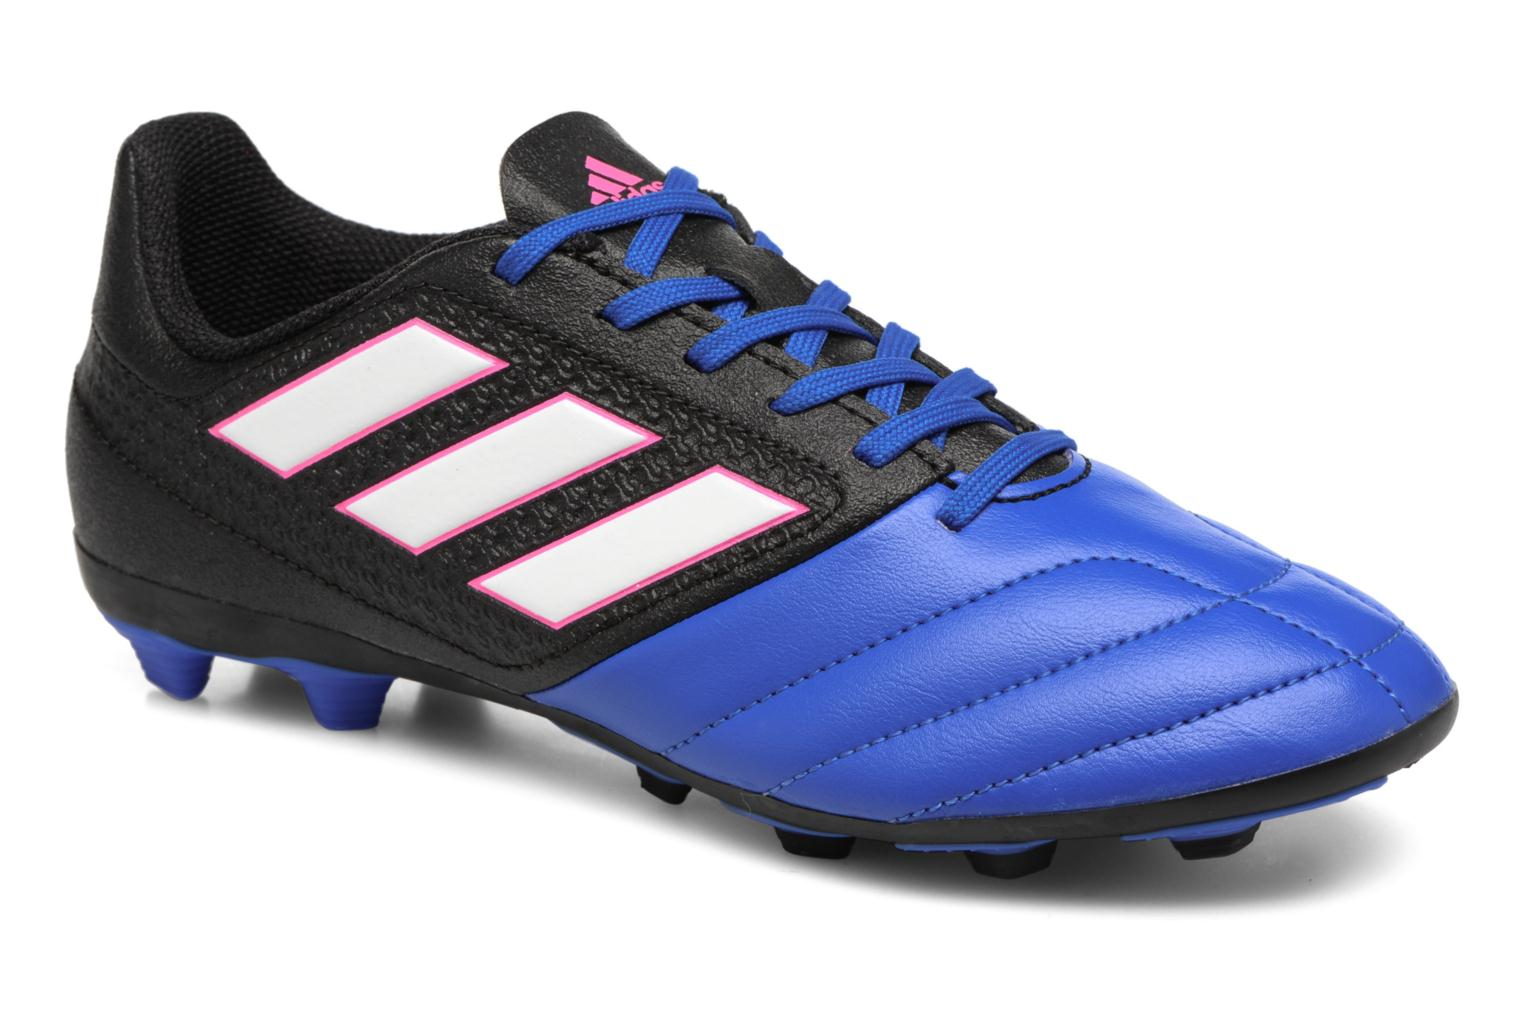 Ace 17.4 Fxg J by Adidas PerformanceRebajas - 10%